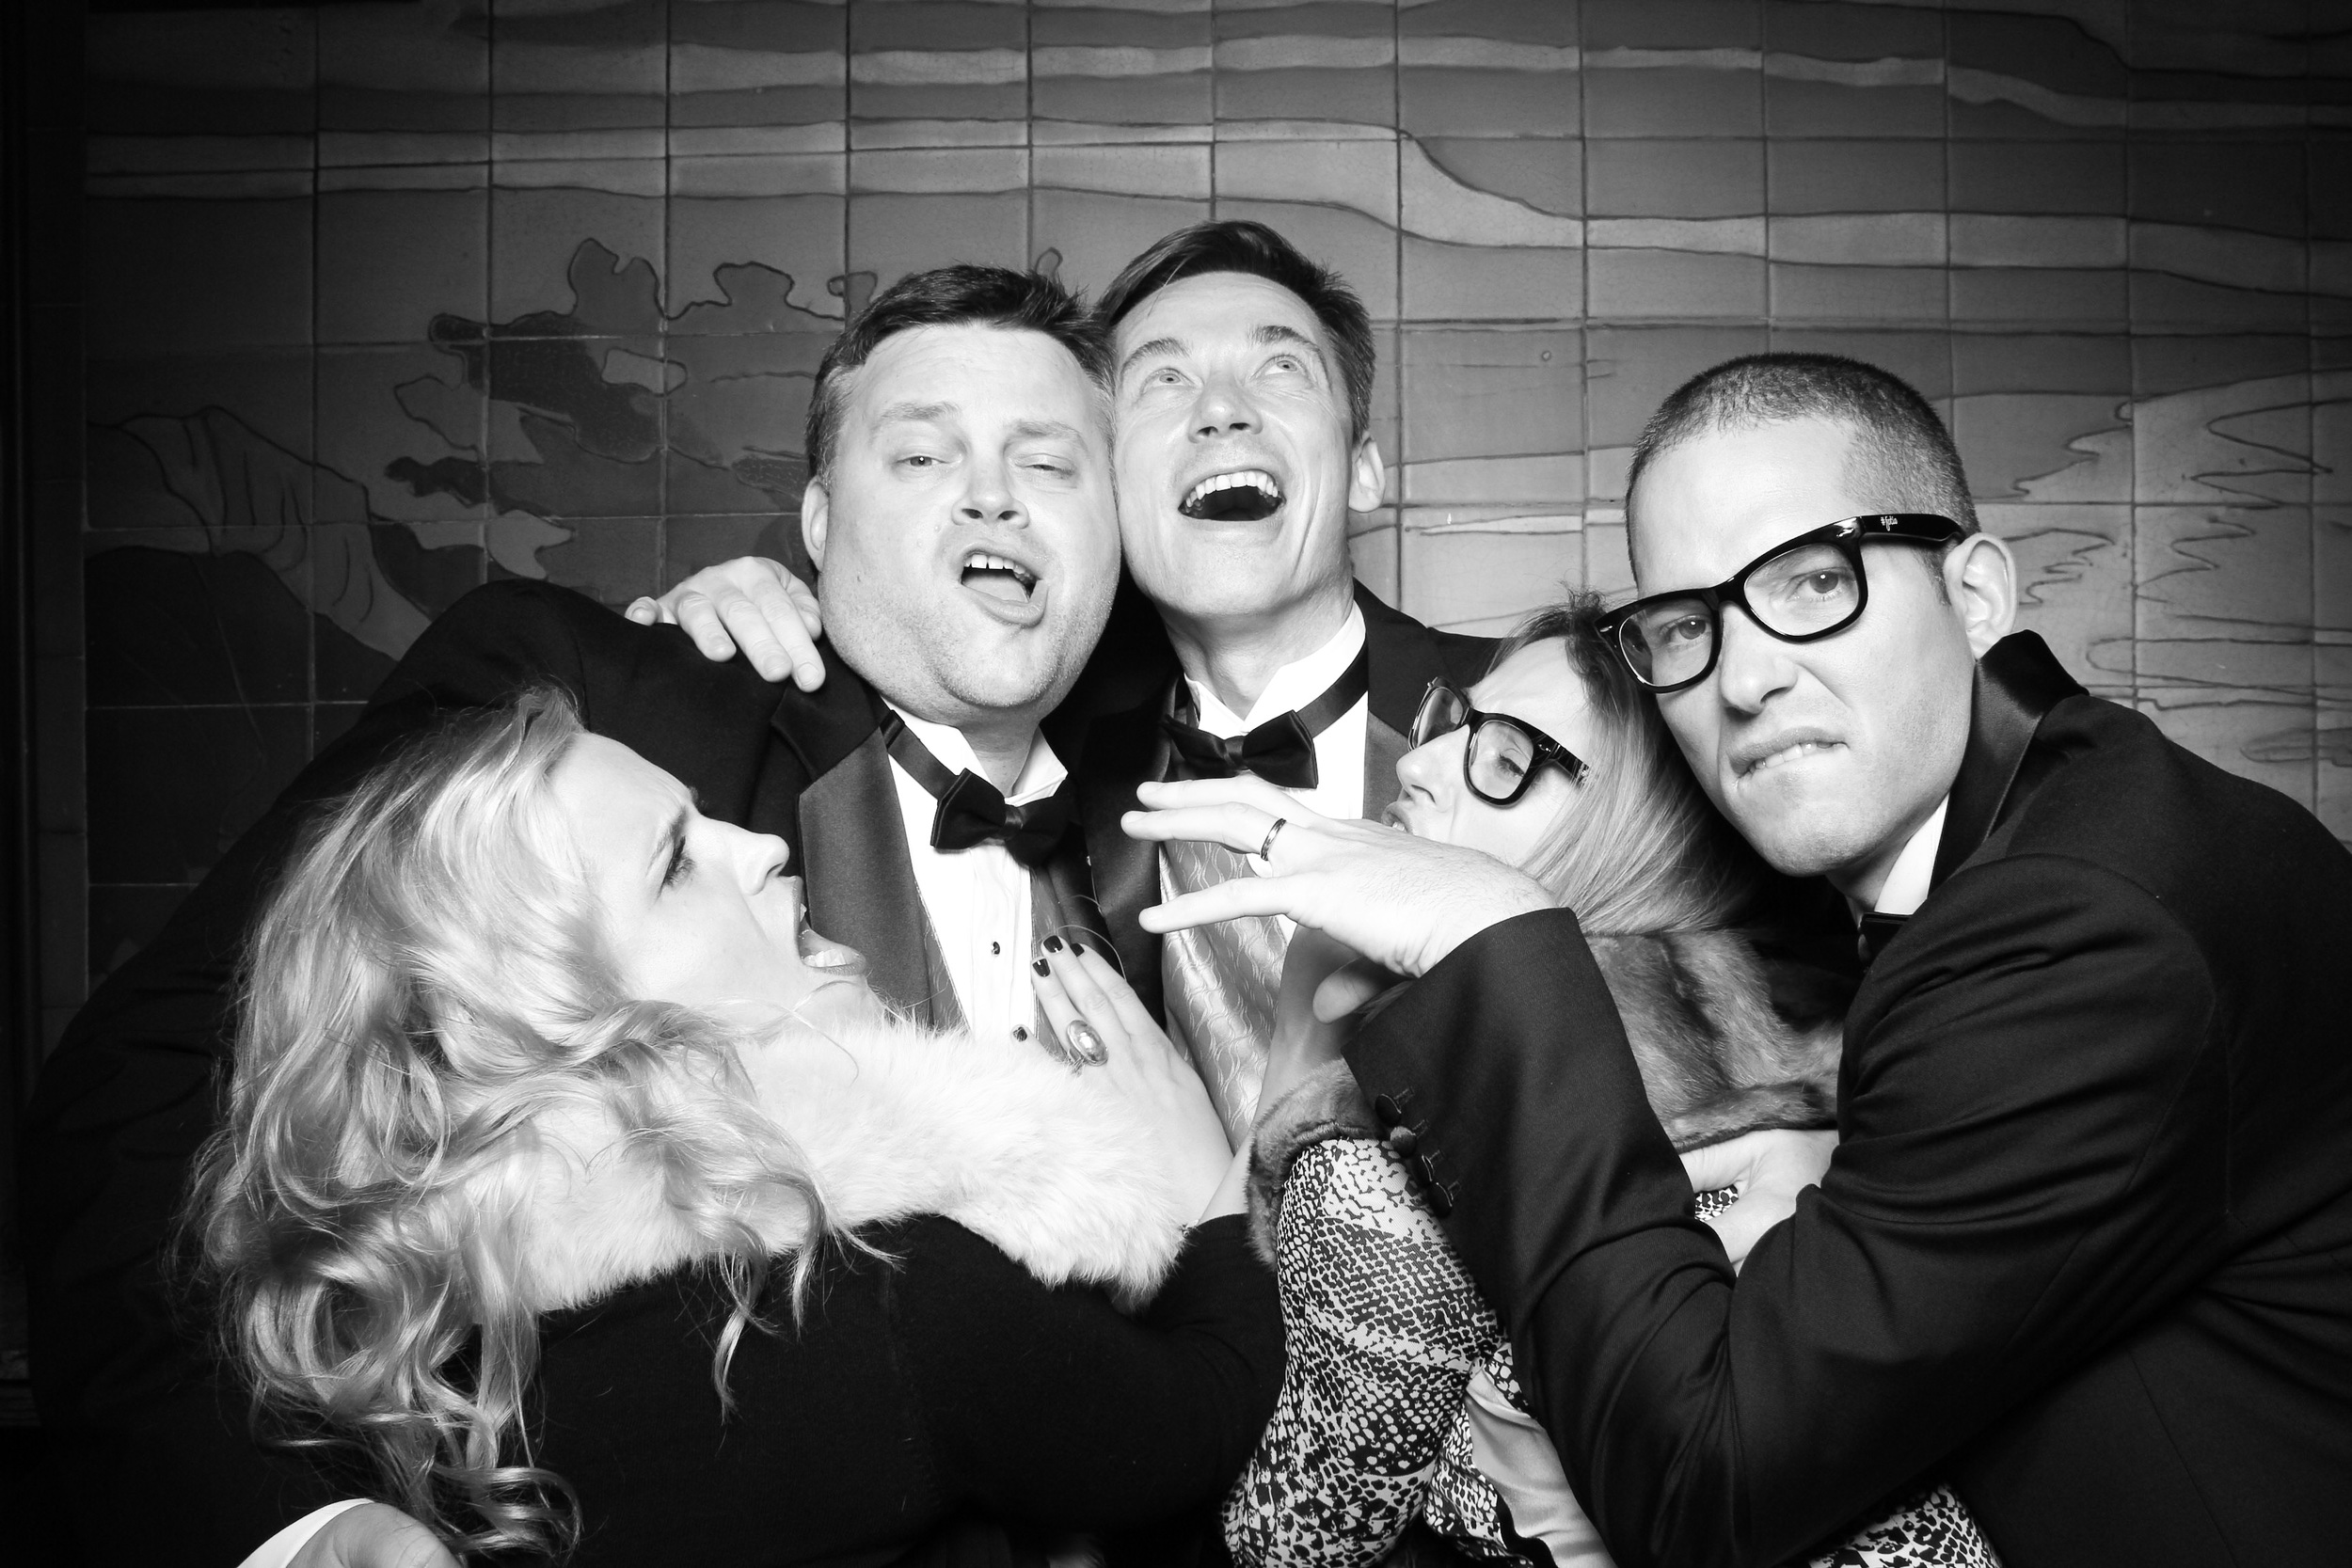 The two grooms pose for a silly picture with friends!